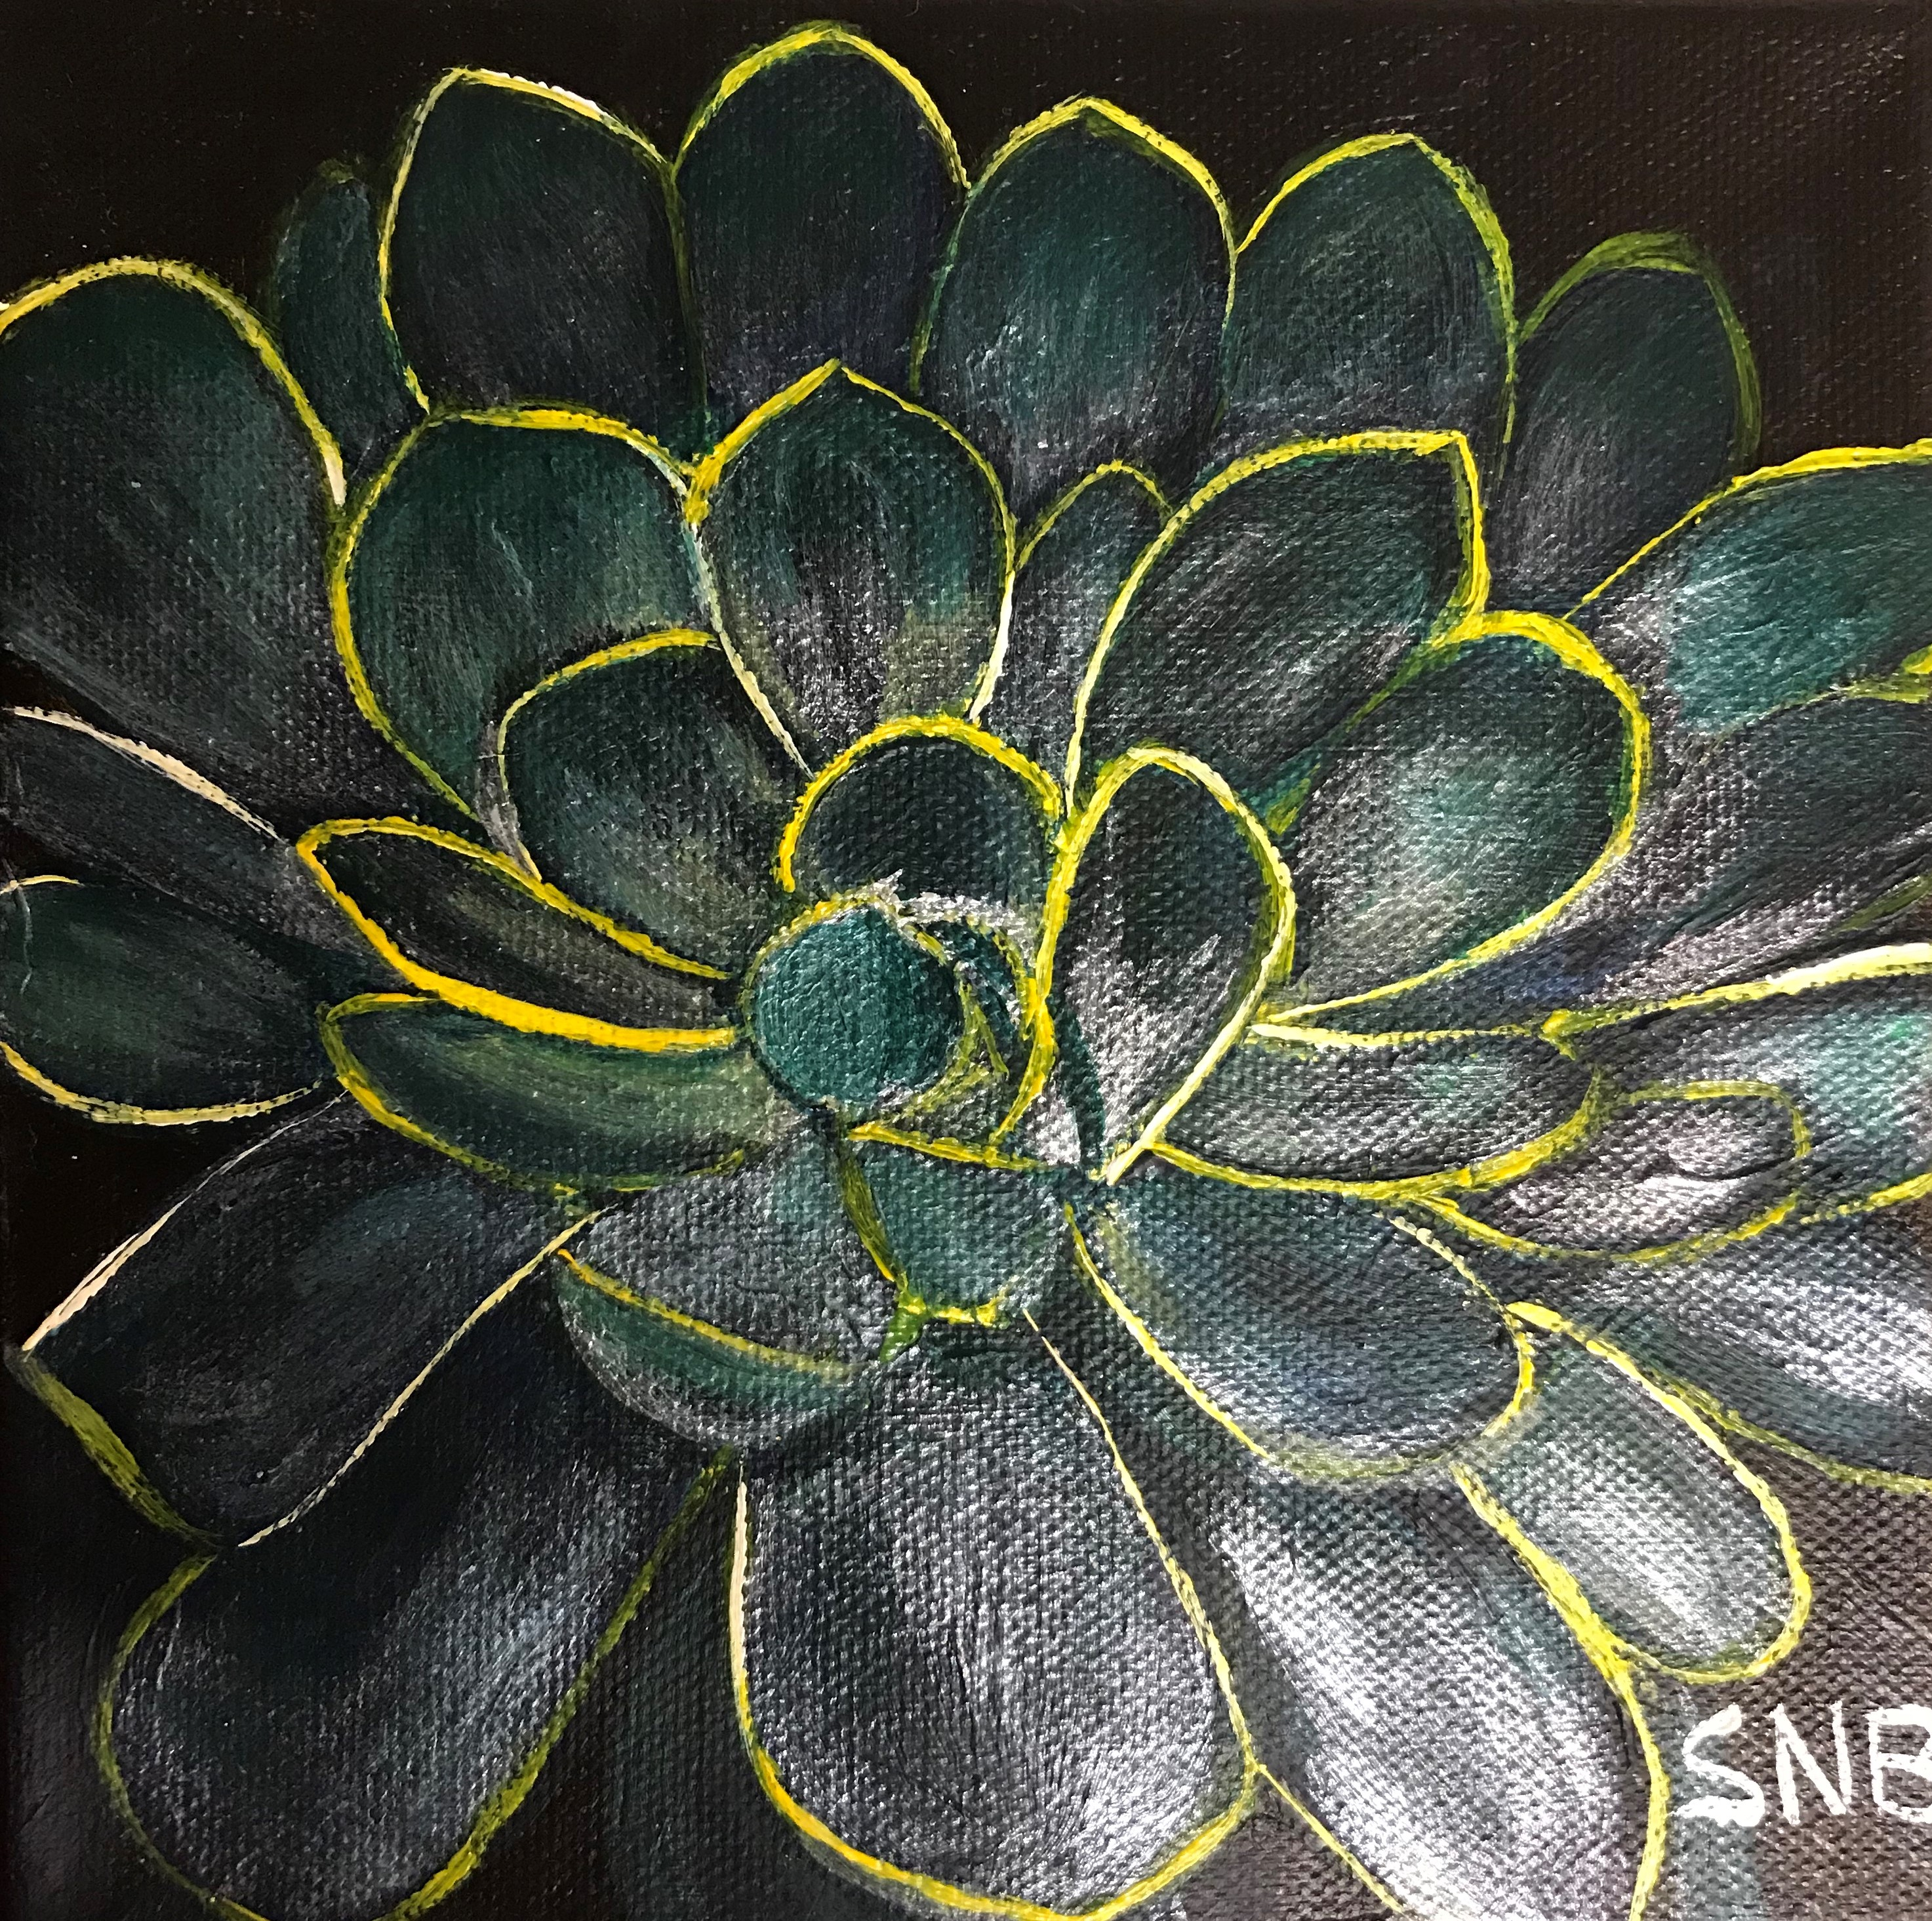 Sedum 5, a 6 x 6 Acrylic Painting on Canvas. The Painting is of a single dark green sedum plant with yellow edges on a black background